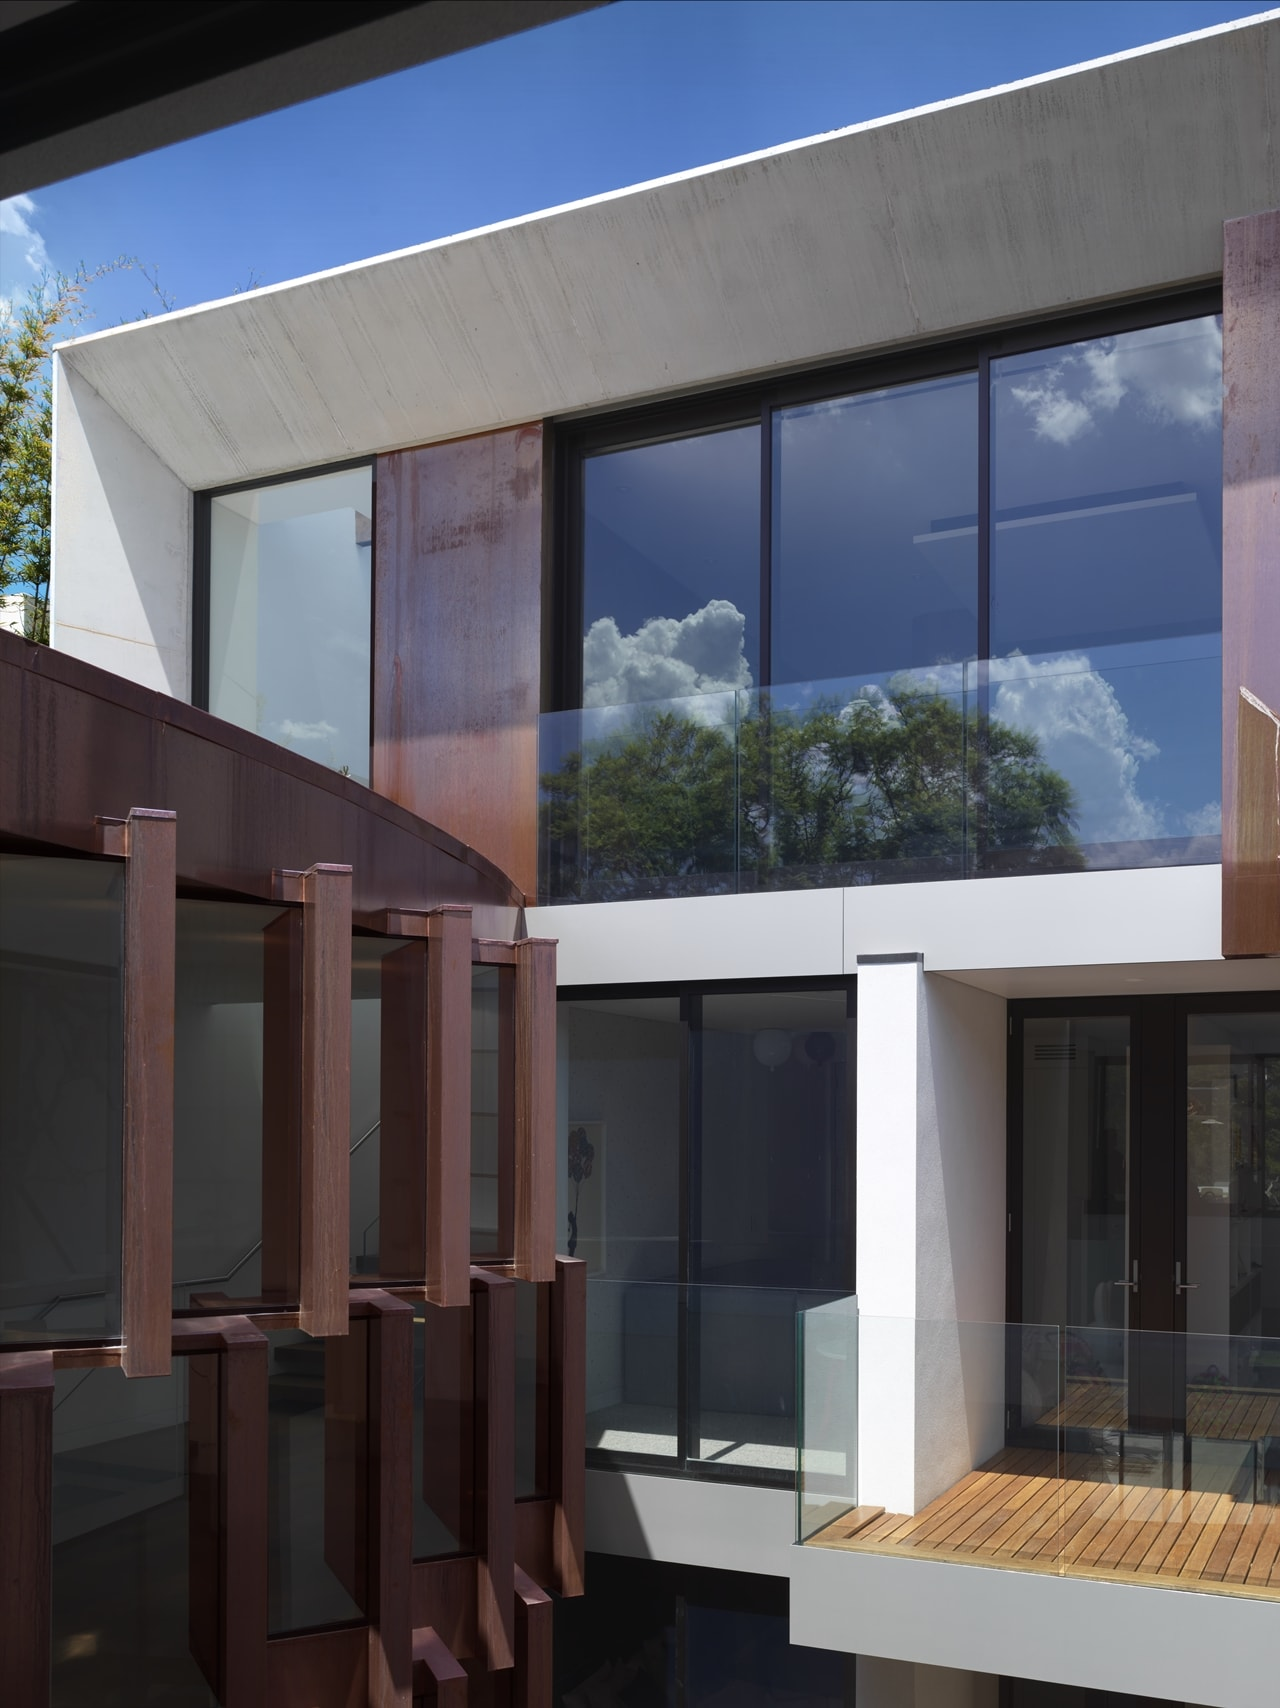 This House Design On Sloped Land Highlights All Benefits of Hillside Homes  Architecture Beast